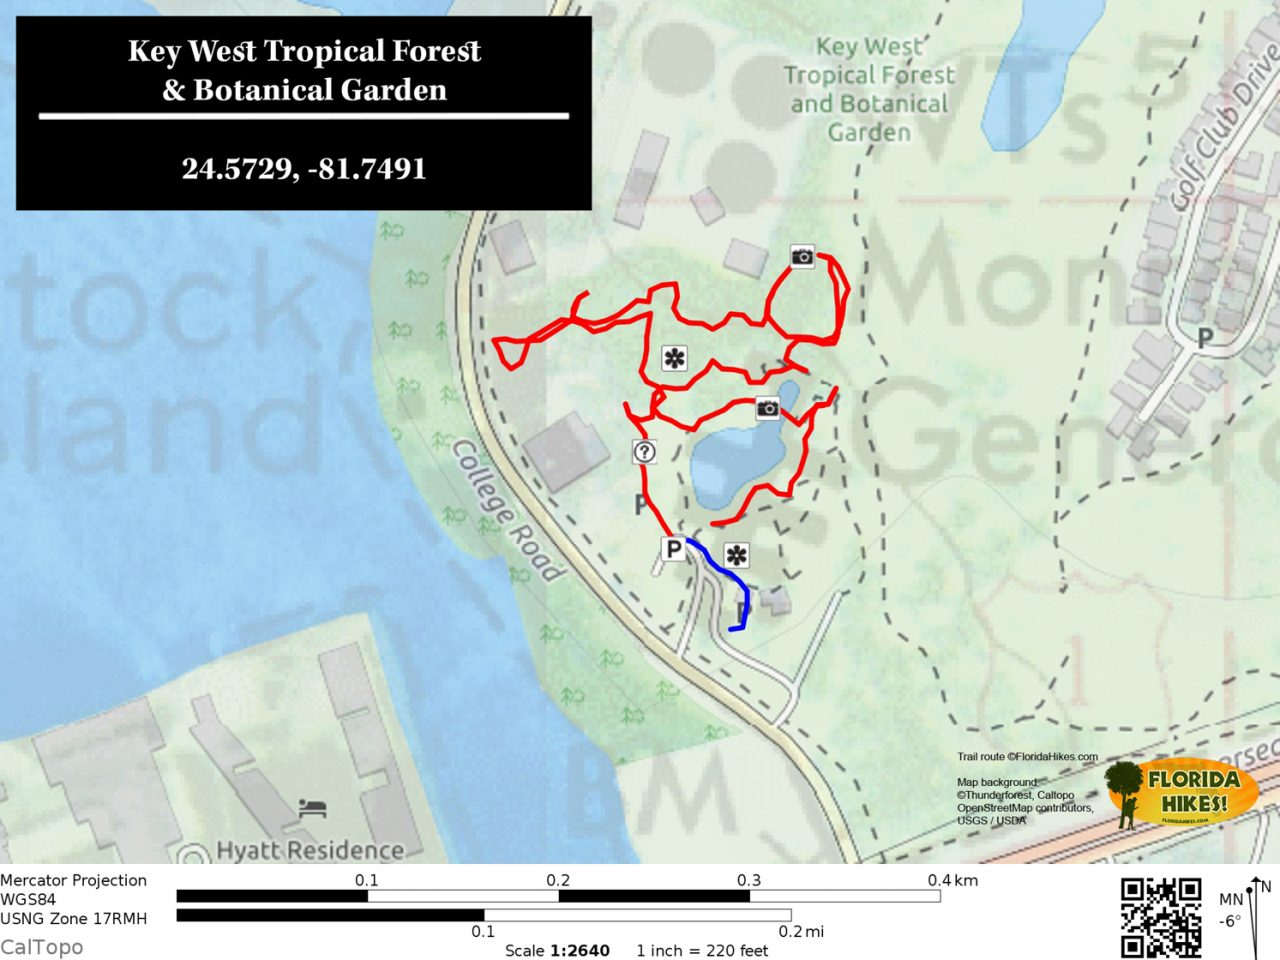 Key West Tropical Forest Botanical Garden trail map